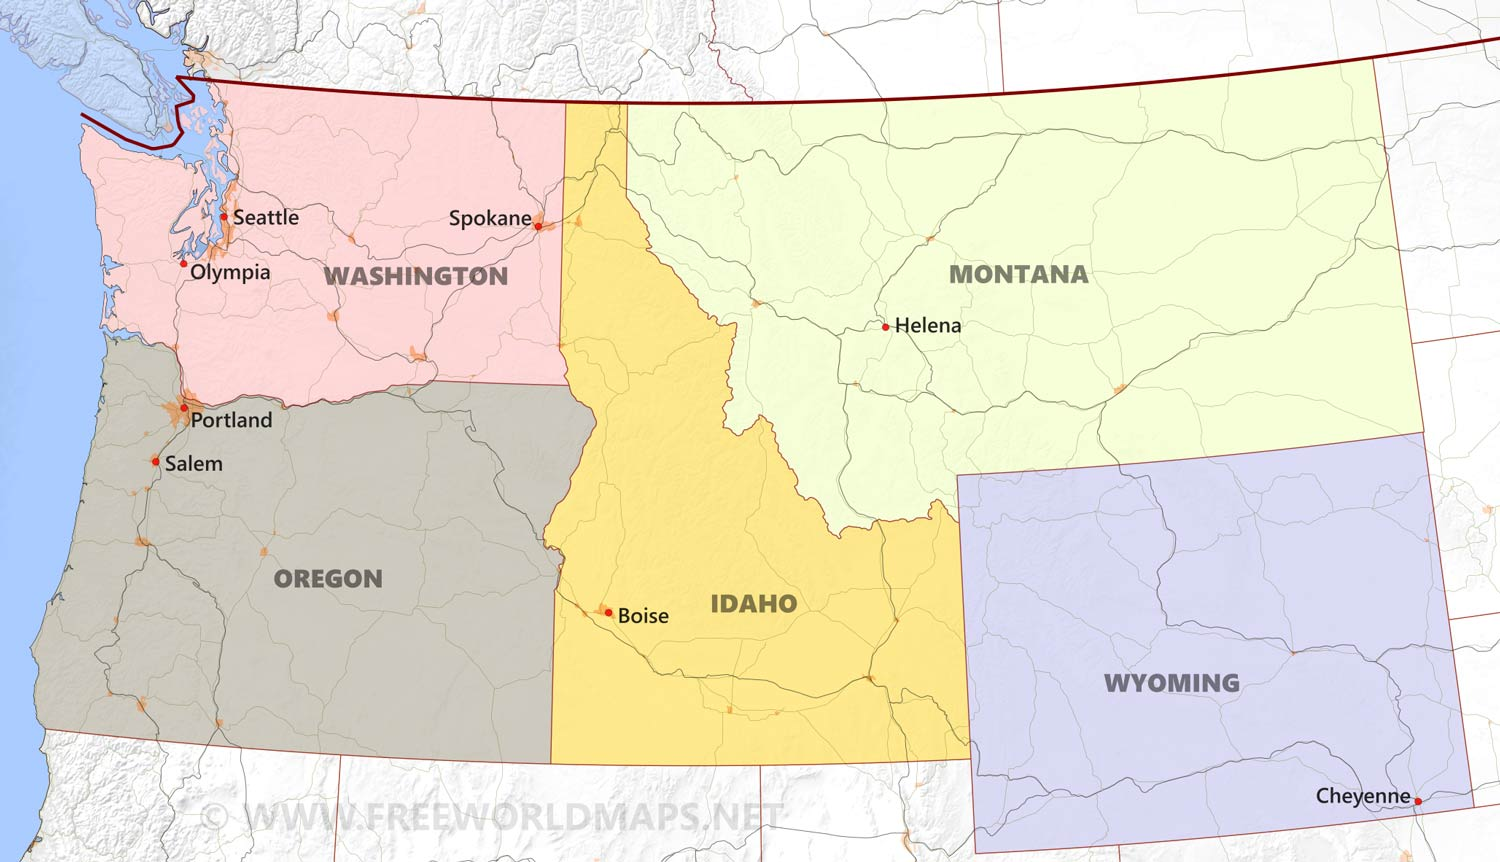 Northwestern US Political Map By Freeworldmapsnet - Washington political map